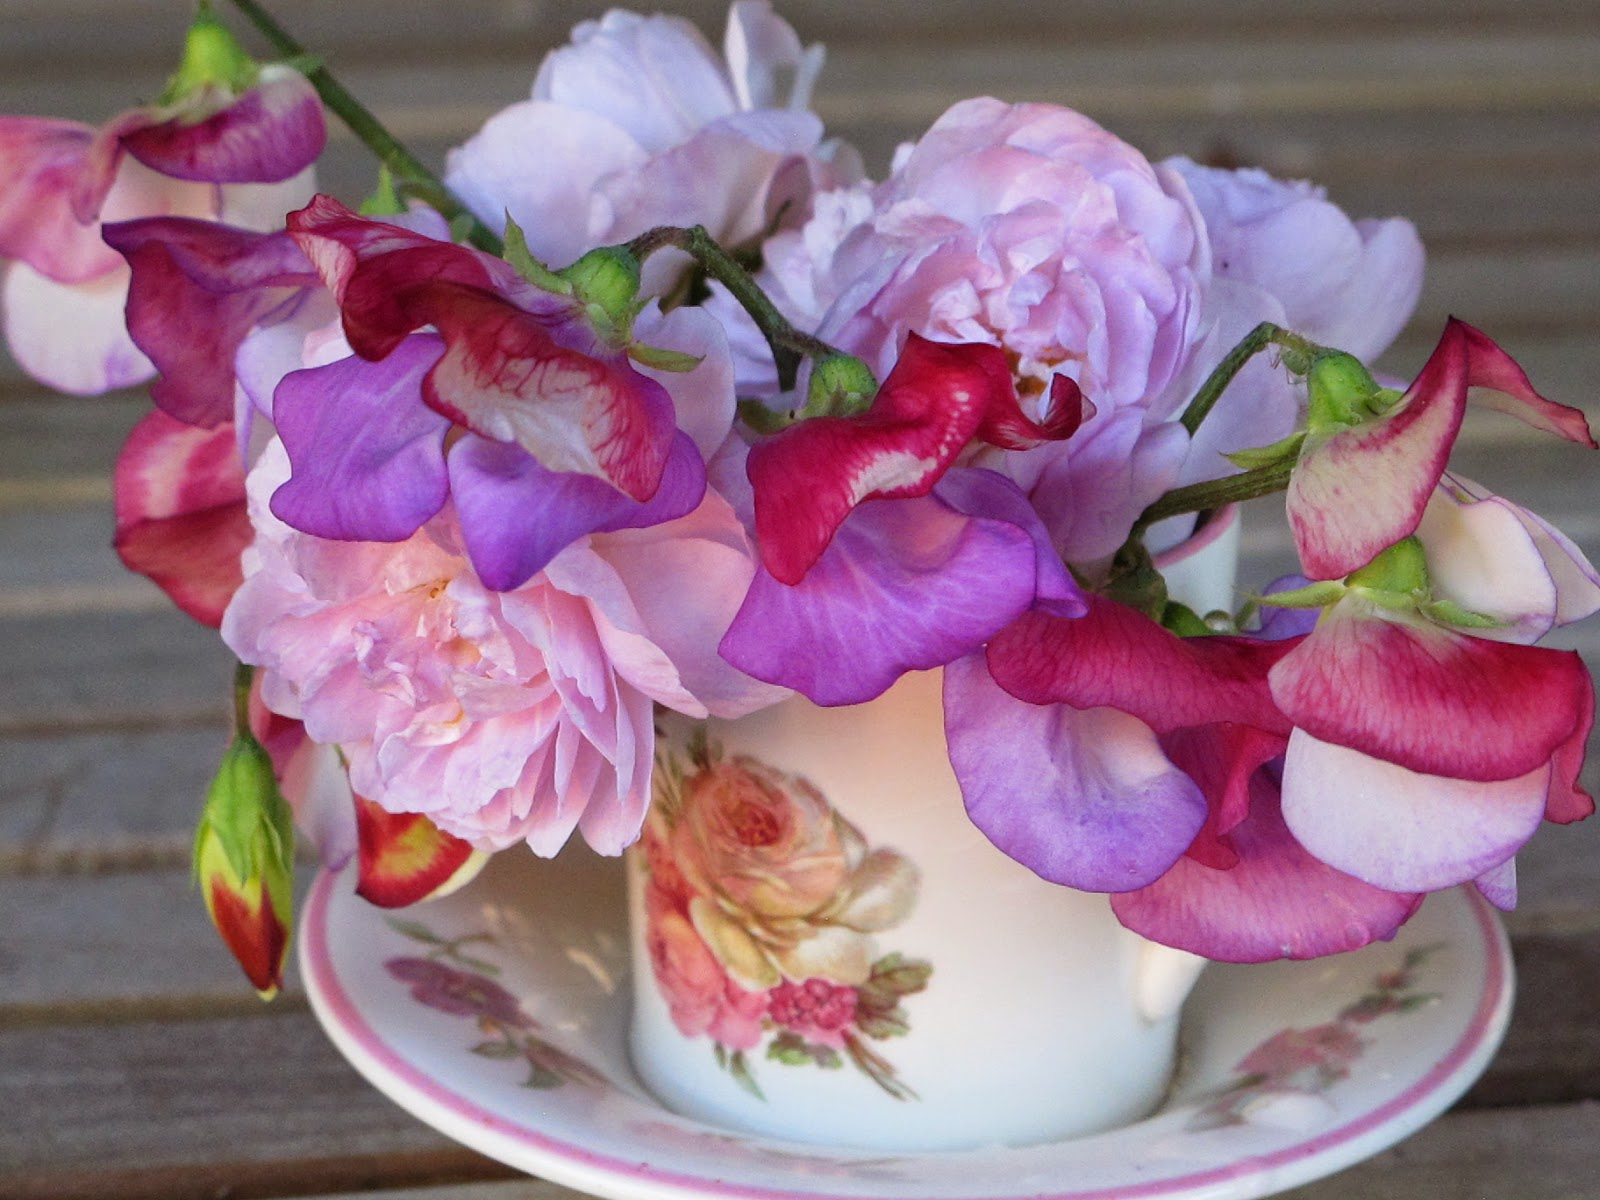 Greentapestry in a vase on monday sweet peas and roses in a vase on monday sweet peas and roses reviewsmspy